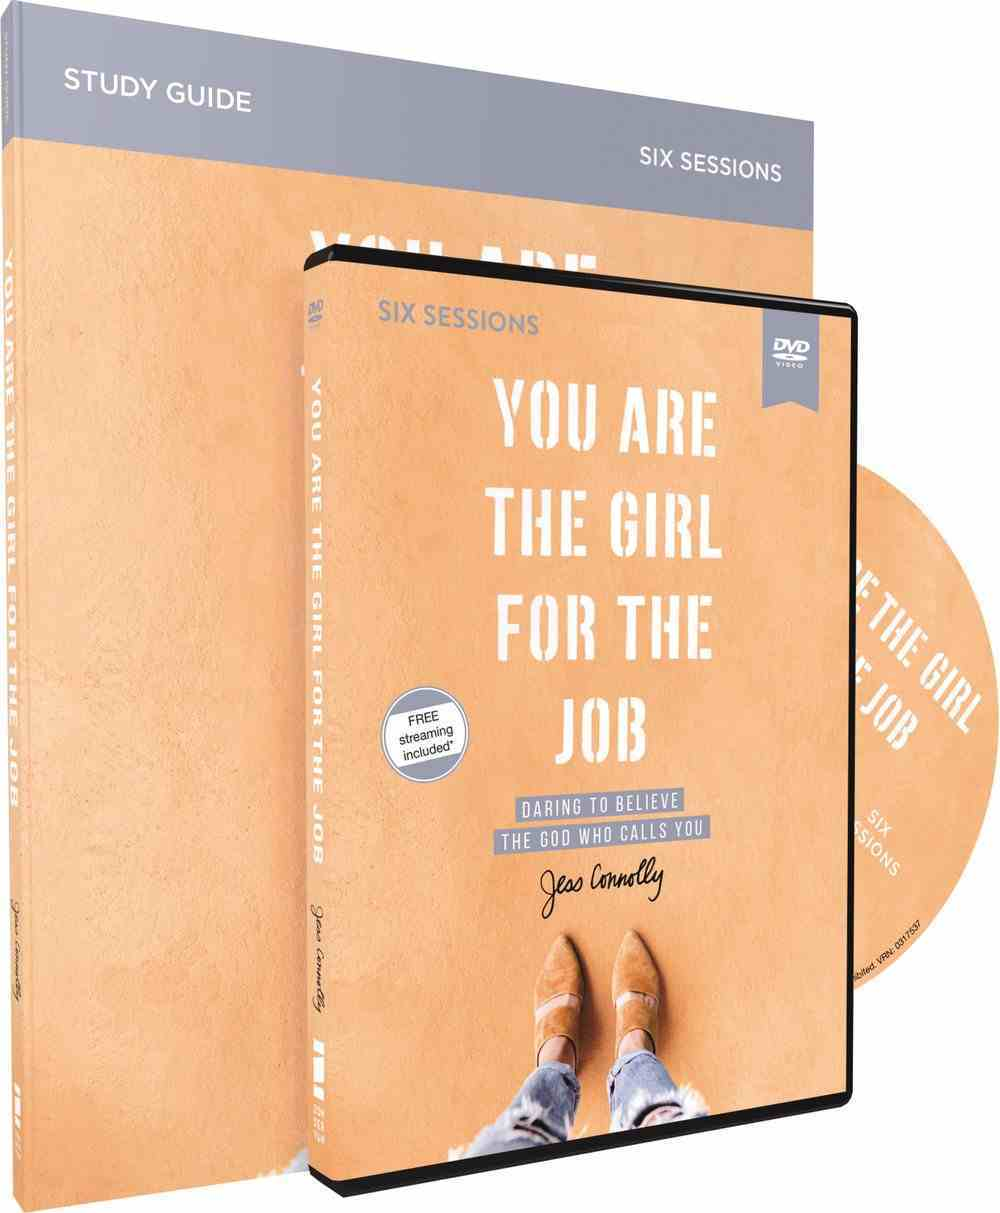 You Are the Girl For the Job: Daring to Believe the God Who Calls You (Study Guide With Dvd) Pack